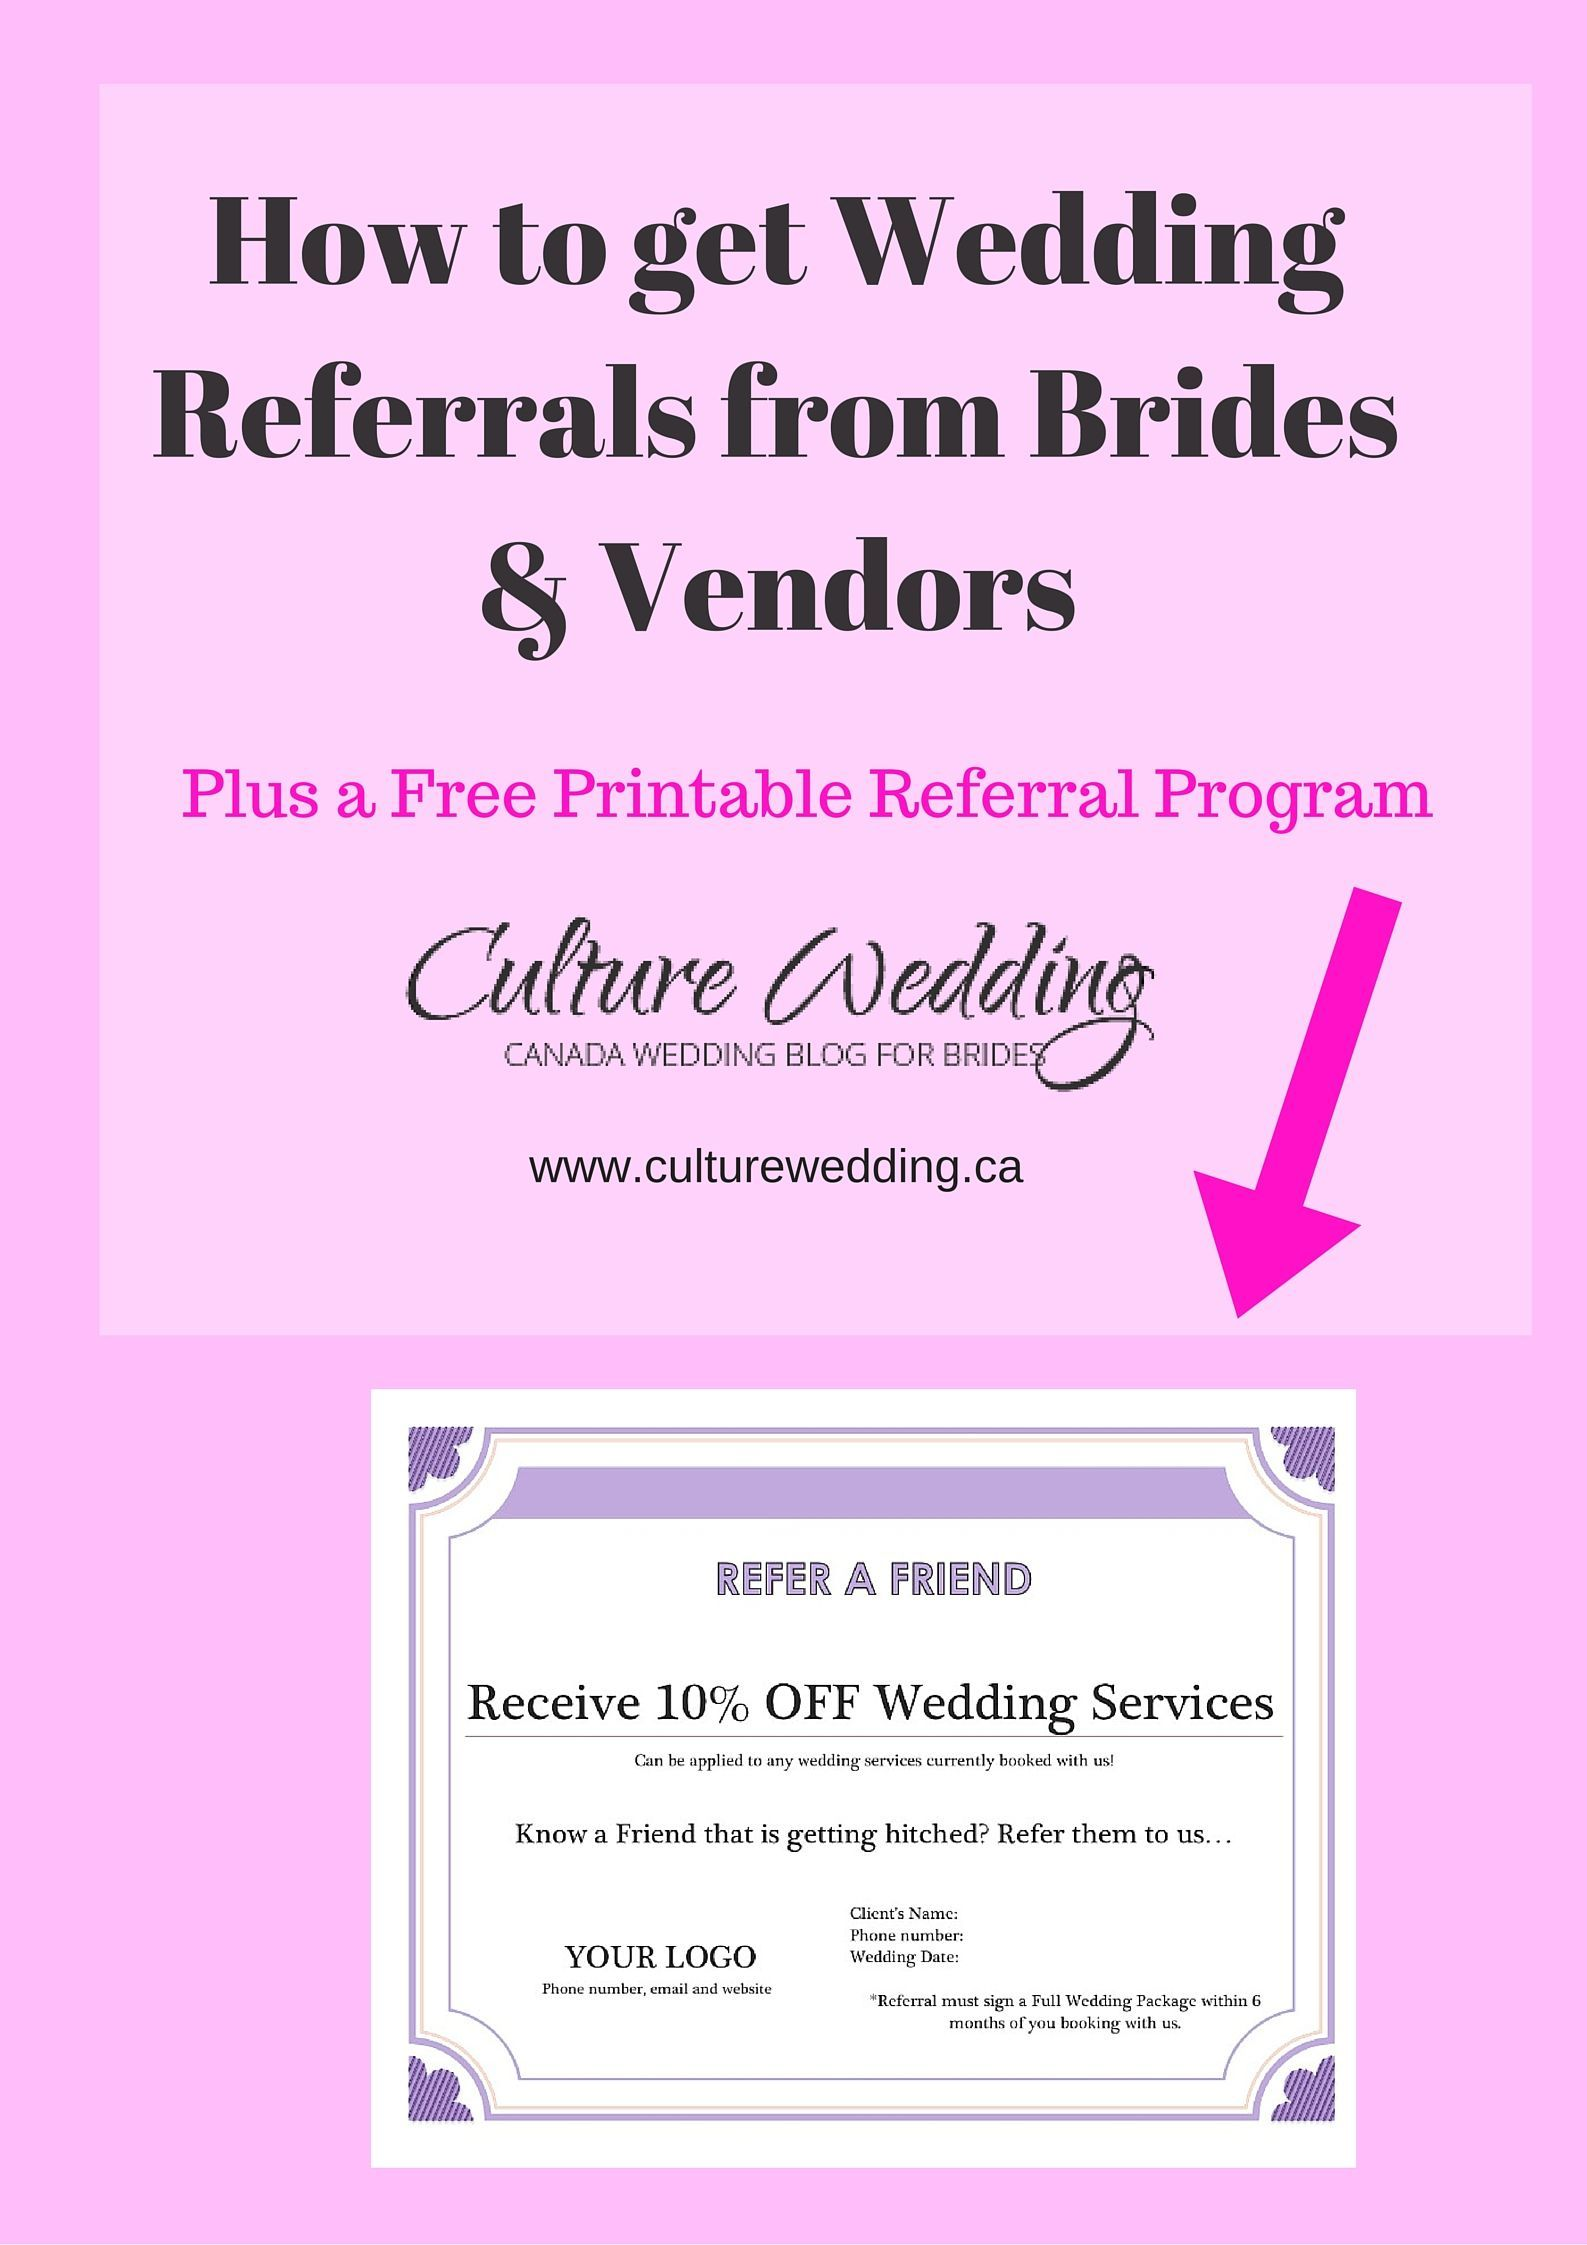 How to get and book more wedding by using a great referral program ...